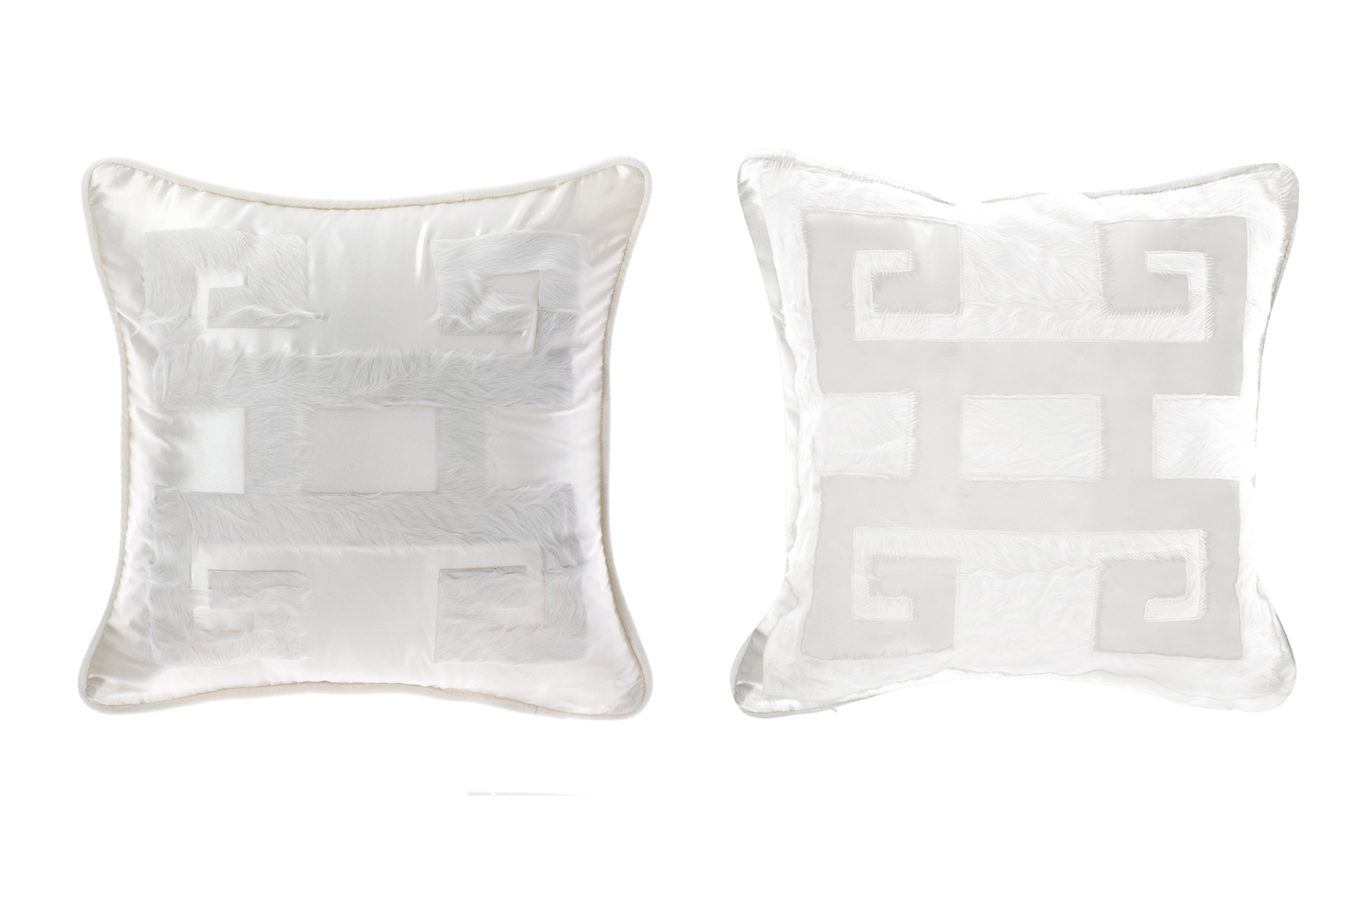 Gianfranco Ferre Home Greek Key Cushion 03